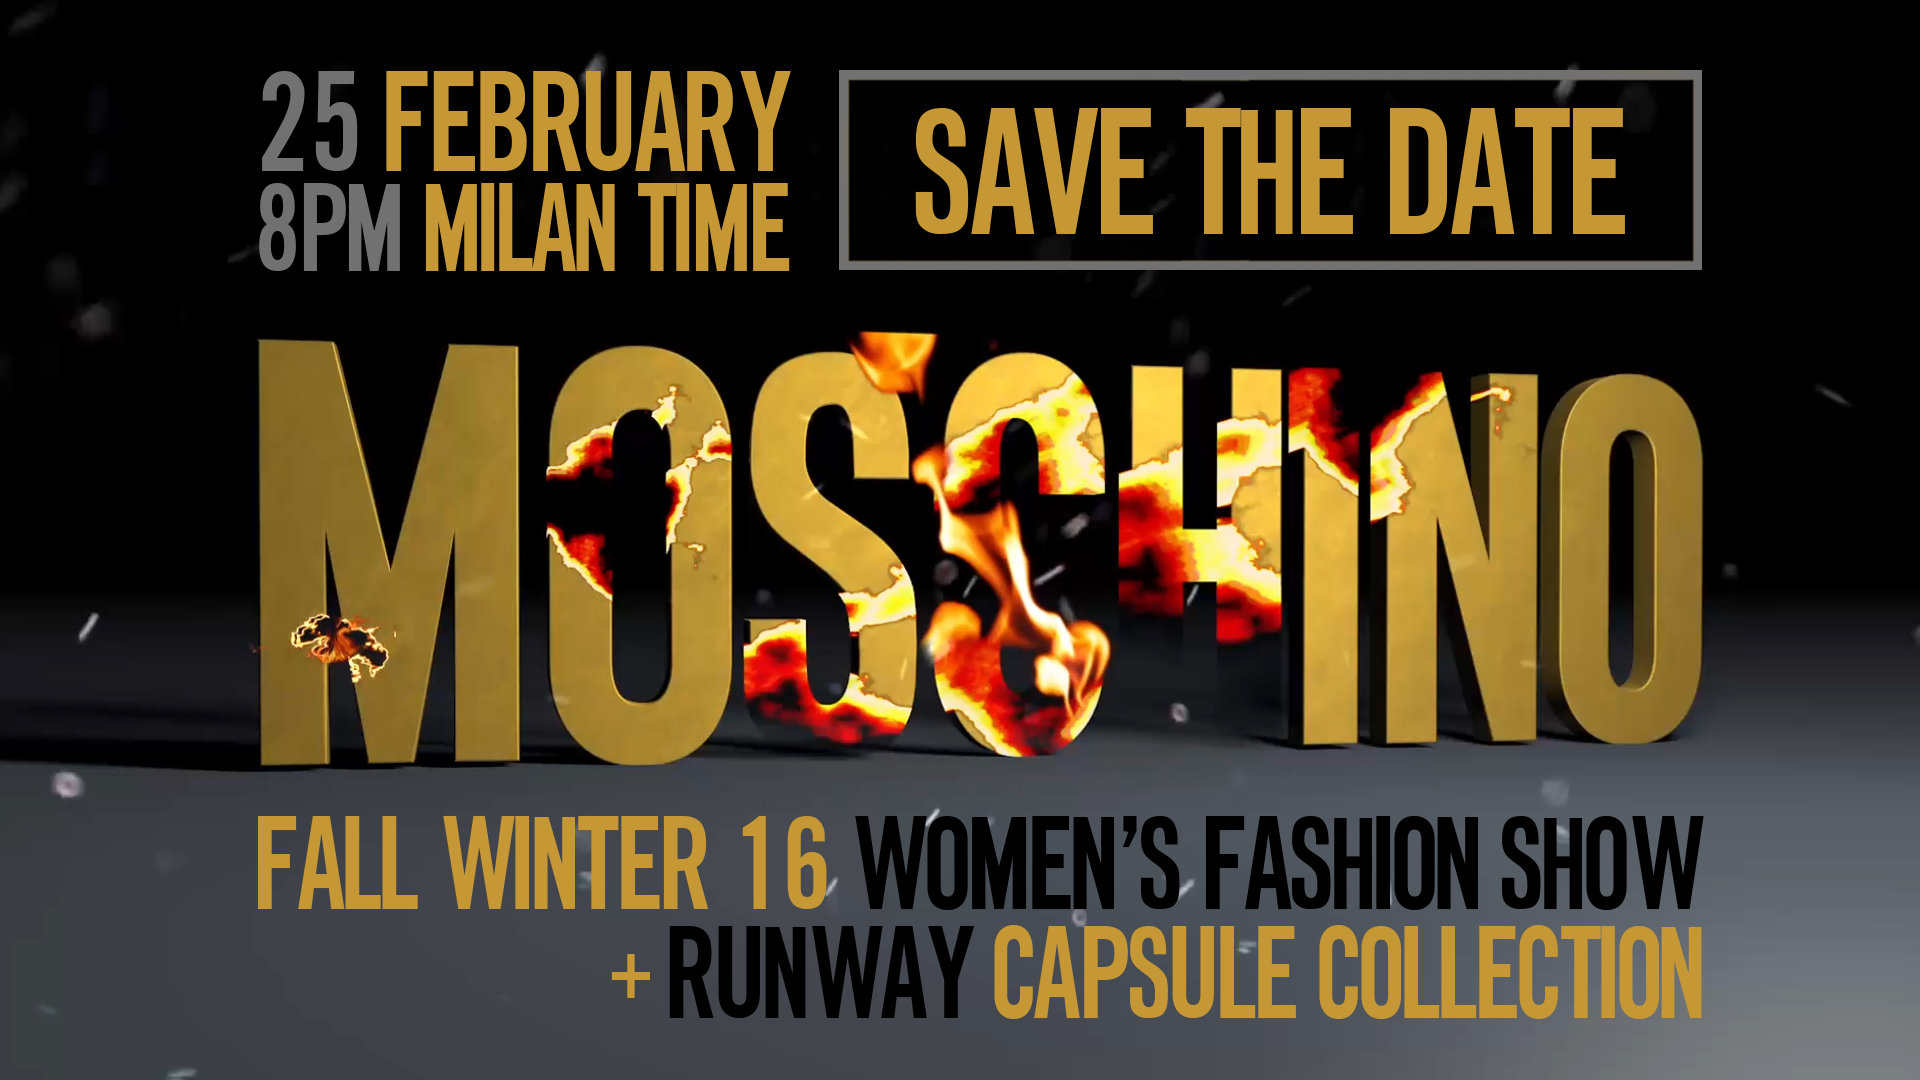 Moschino Fall Winter 2016 Women's Fashion Show Live Streaming